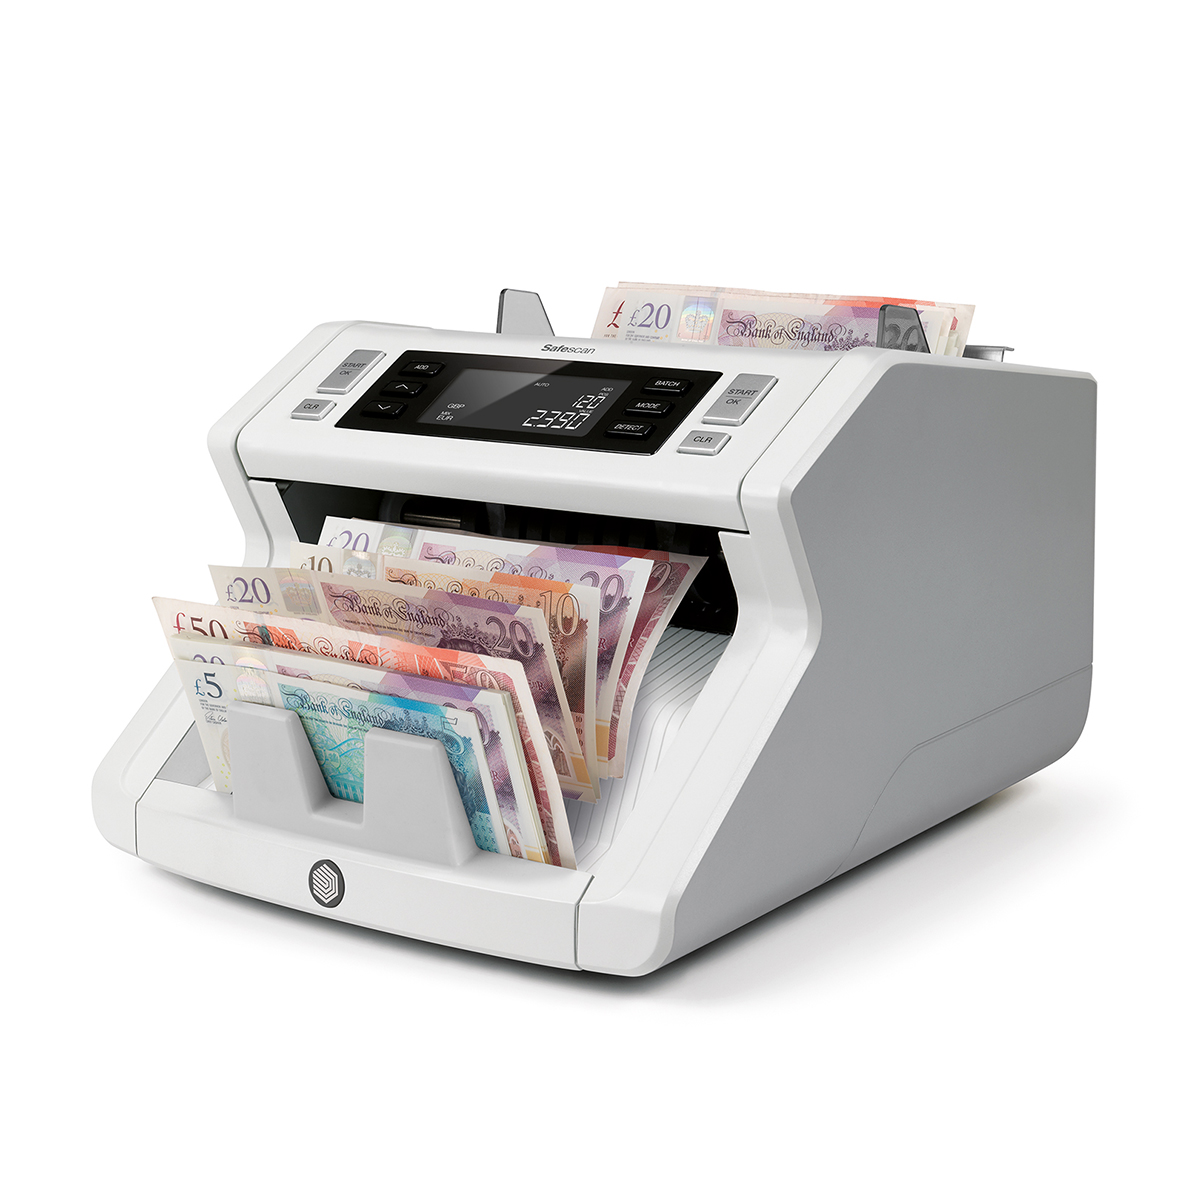 Safescan 2265 Automatic Bank Note Counter with 4 point Detection